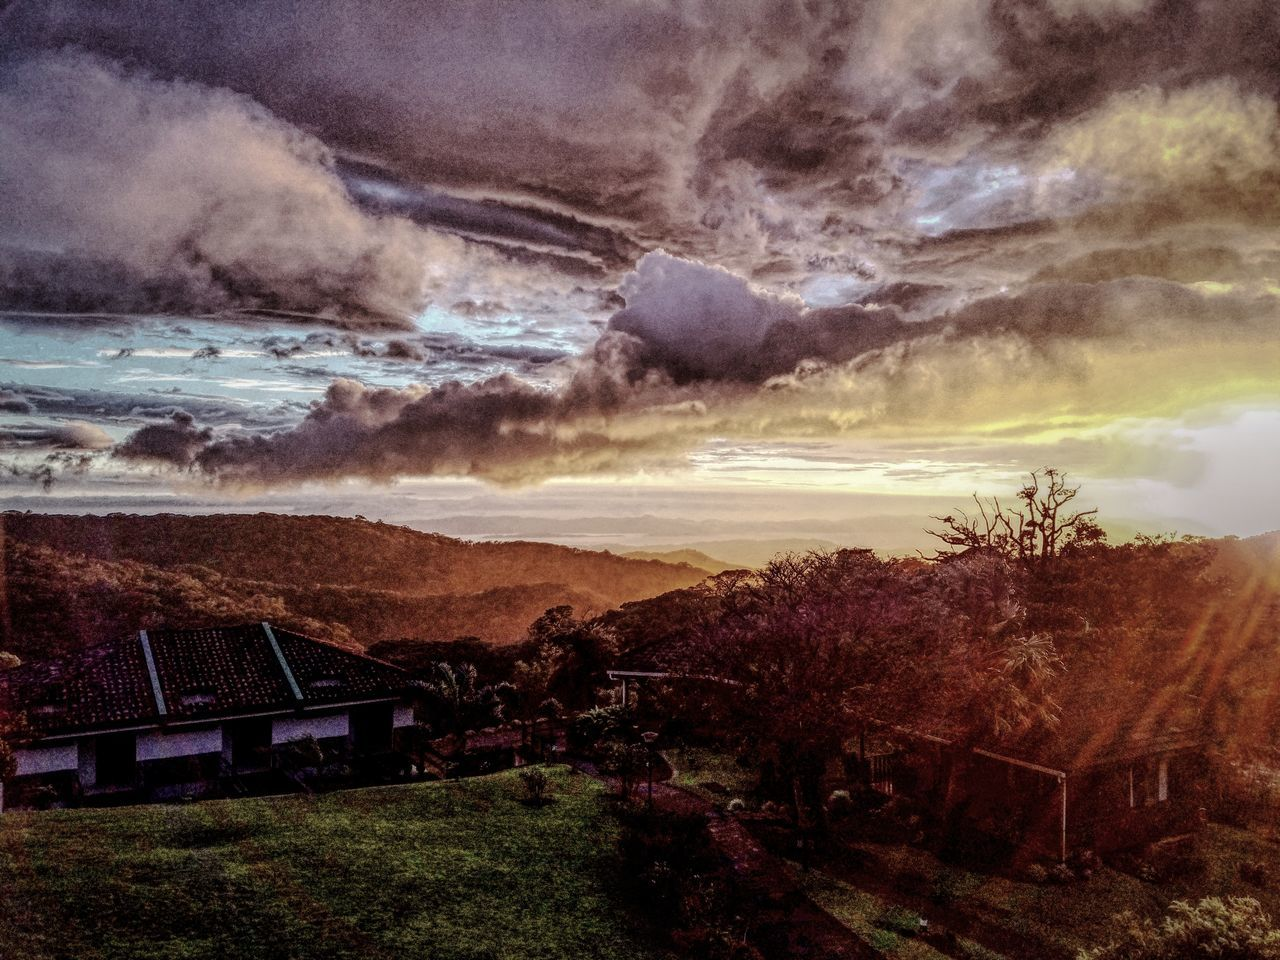 sky, house, cloud - sky, built structure, no people, dramatic sky, nature, architecture, beauty in nature, outdoors, building exterior, scenics, tree, mountain, landscape, storm cloud, grass, day, sunset